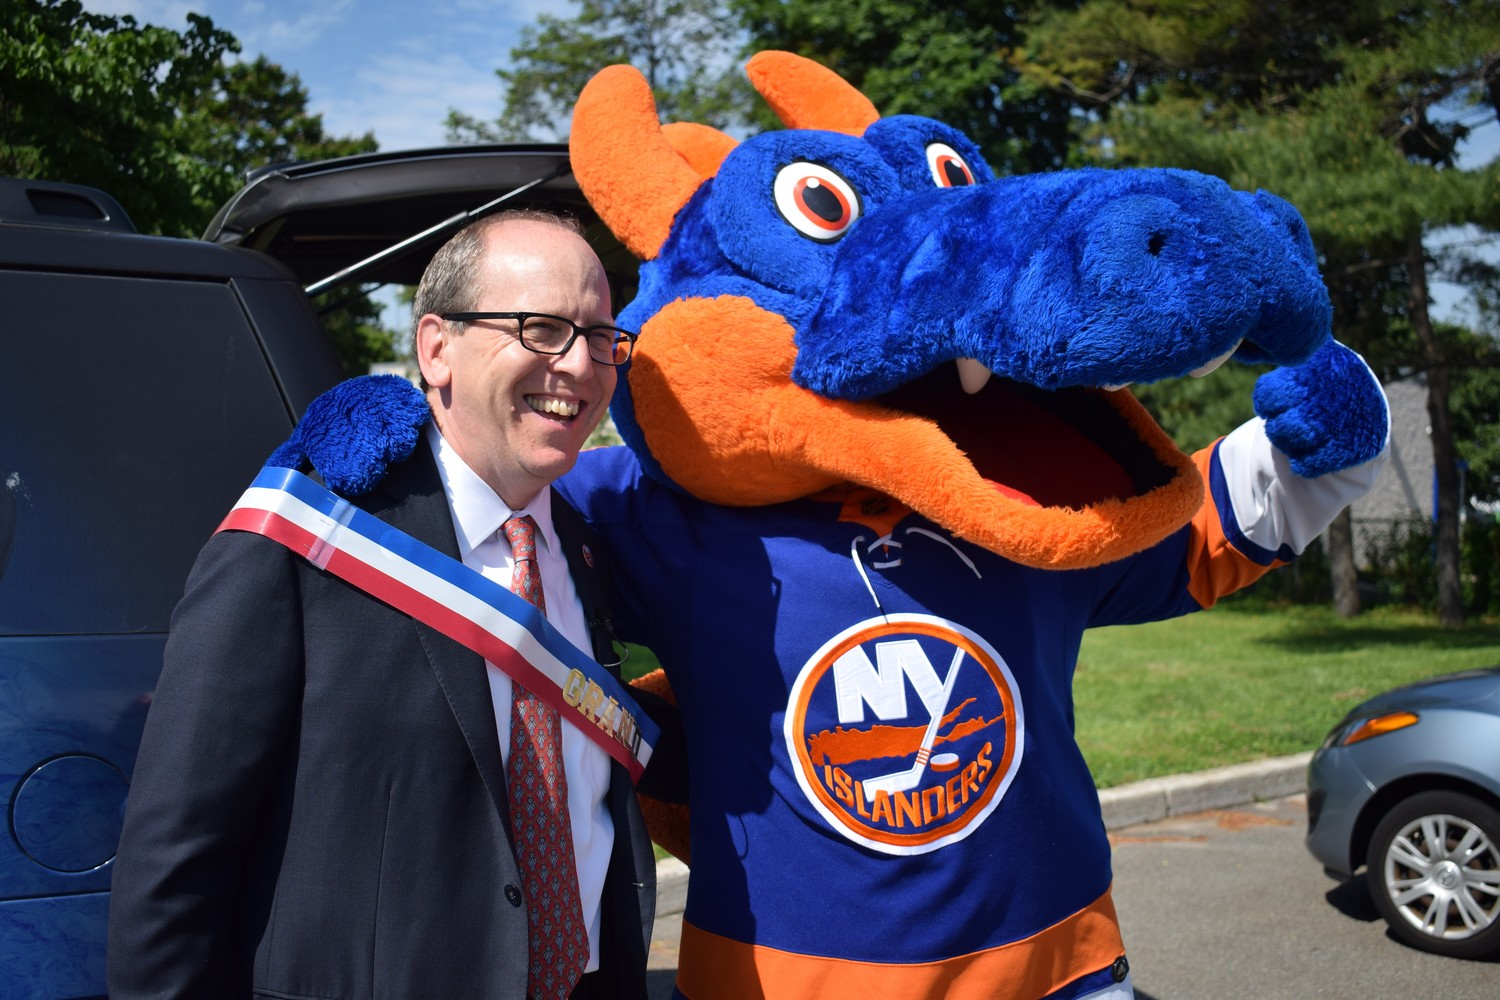 Islanders owner Jon Ledecky with team mascot Sparky. The Islanders have chosen Belmont Park as the home of their future arena, to open in 2021.